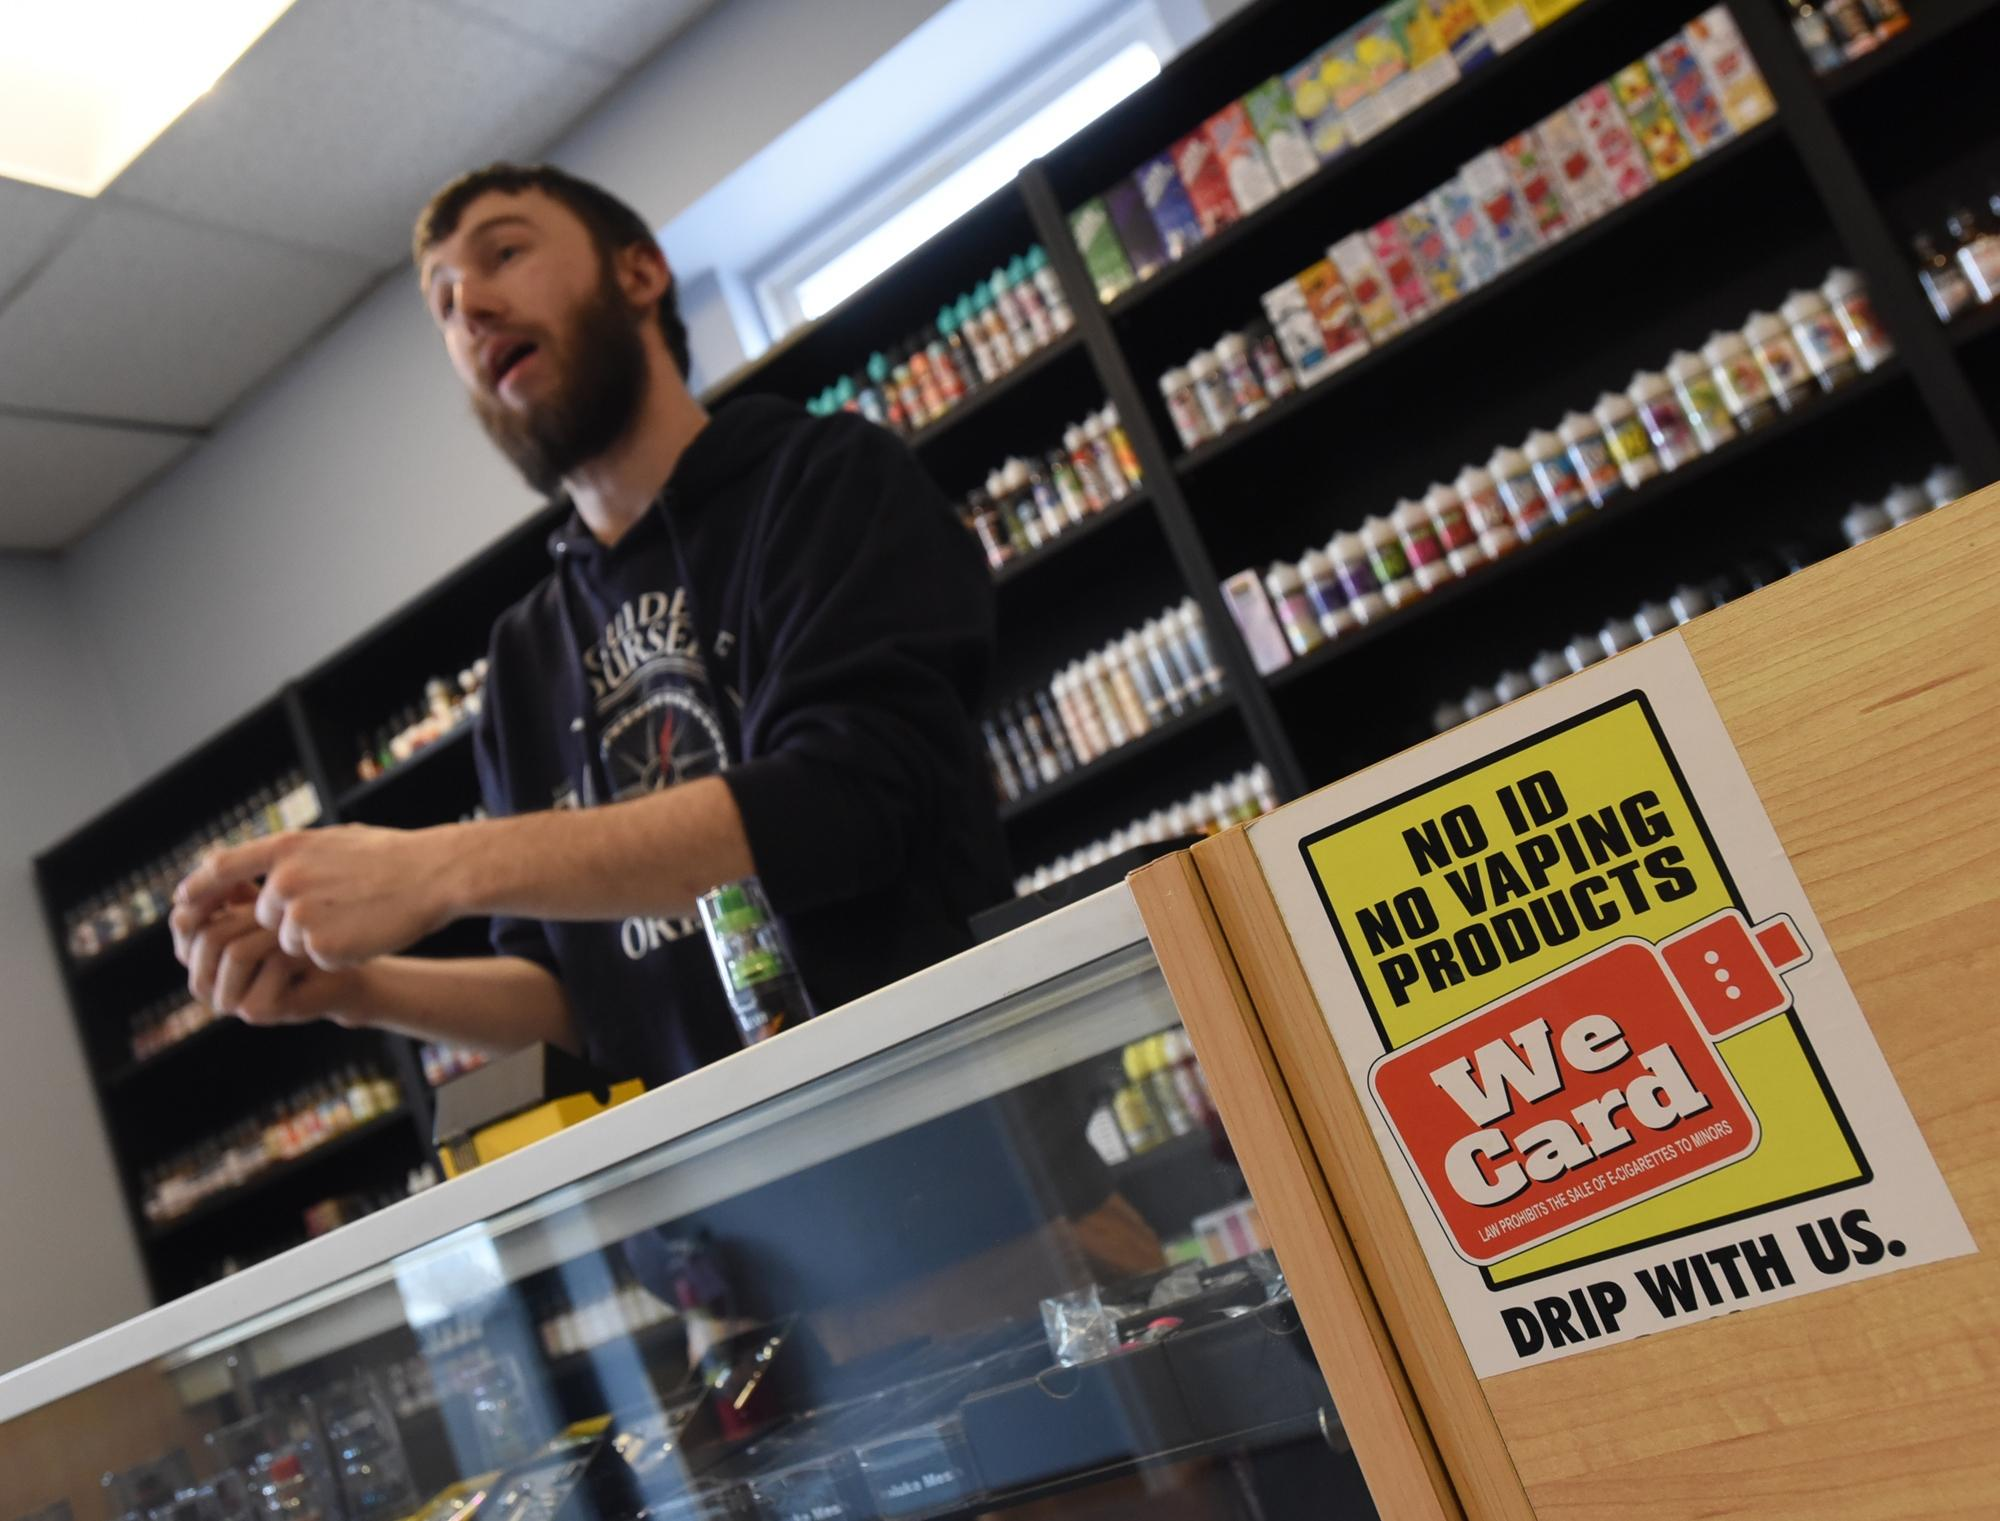 Vape Shop Clerk Checking ID with We Card Sticker on Counter